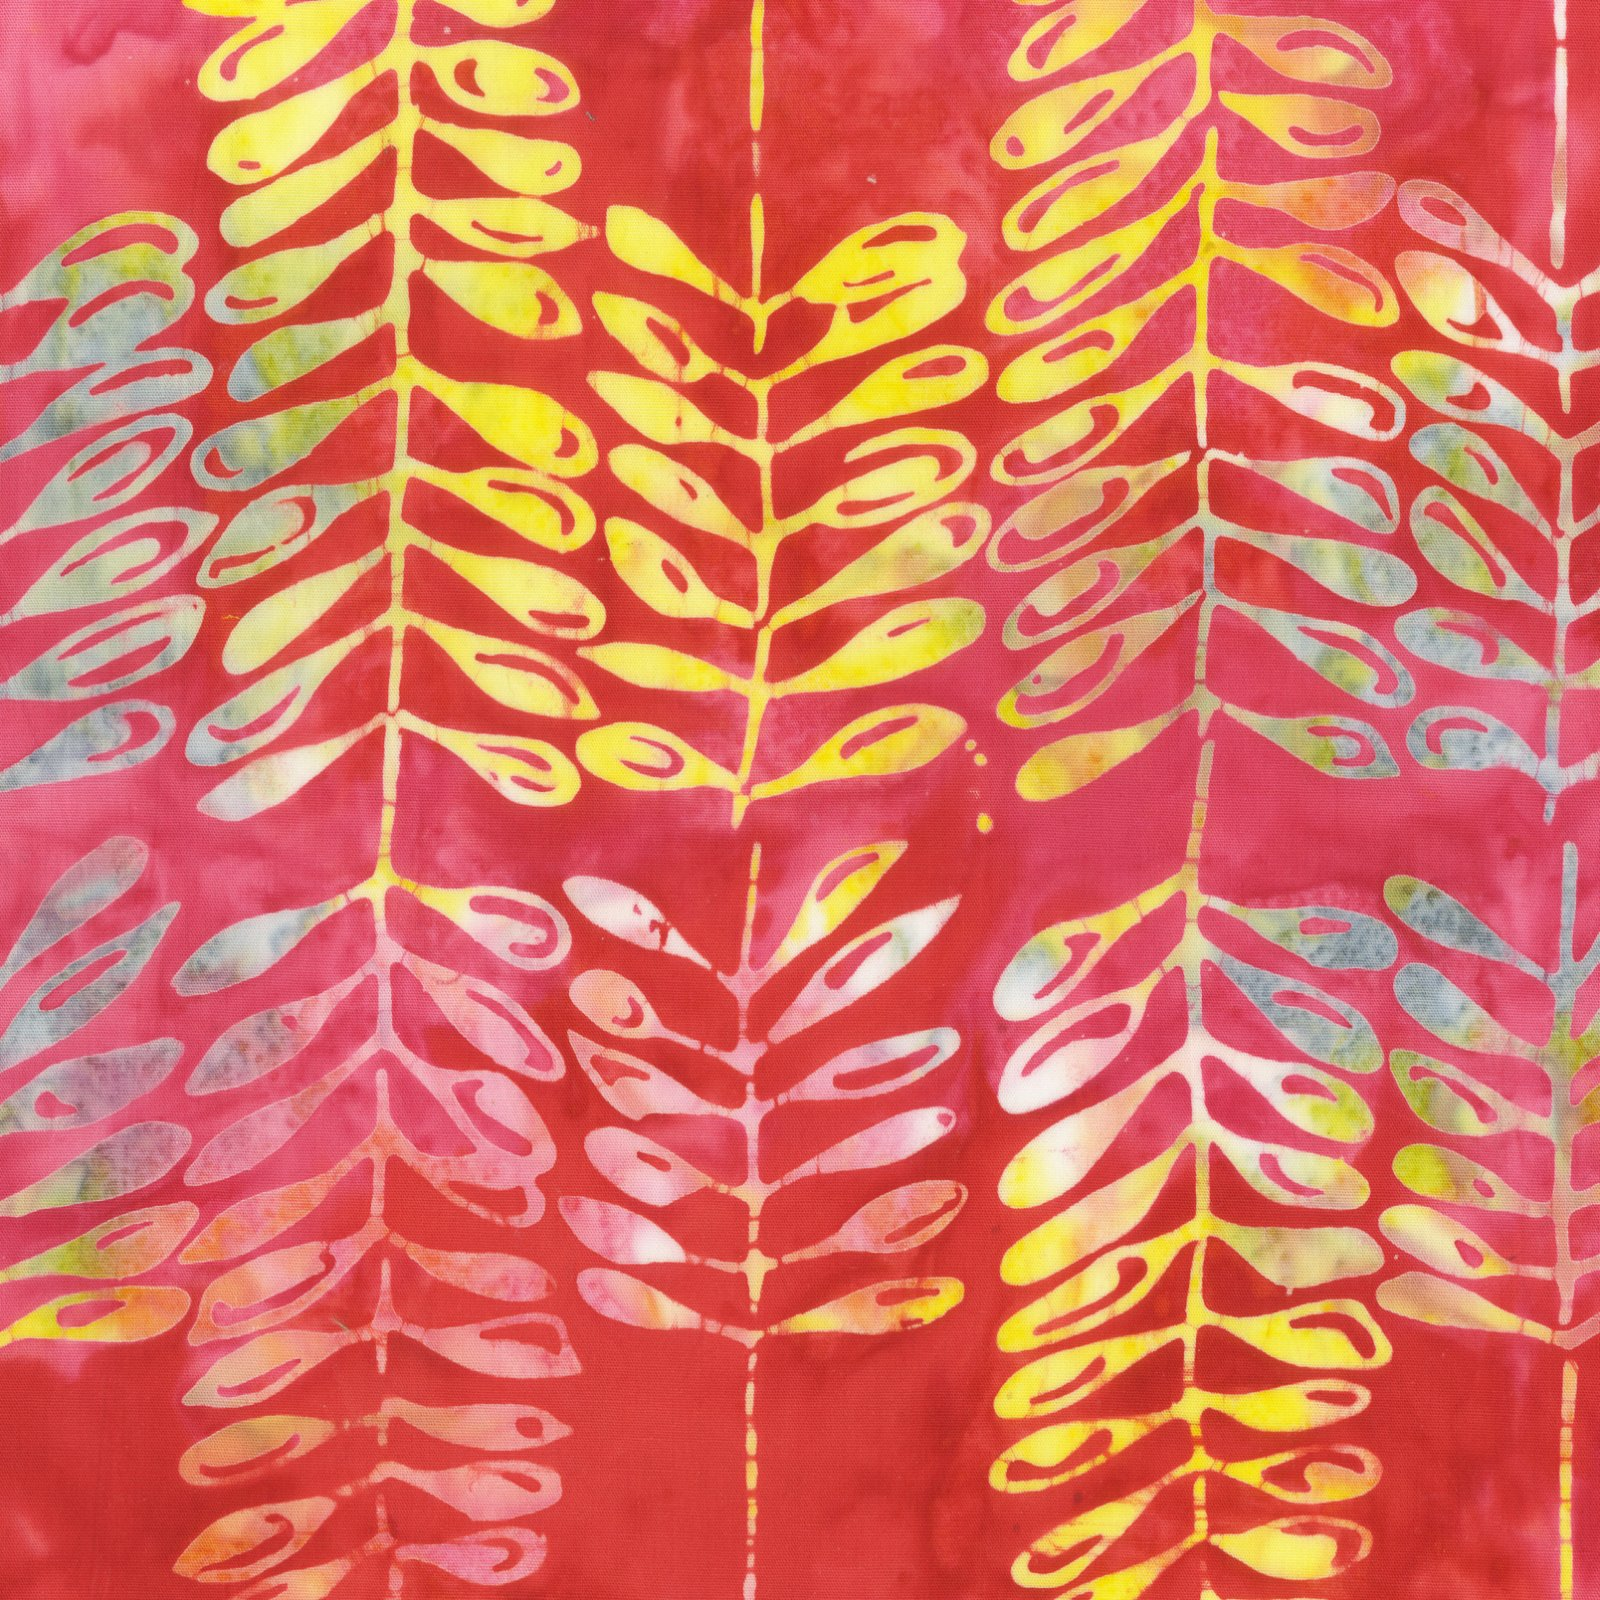 705Q-2 Island Home by Natalie Barnes of Beyond the Reef for Anthology Fabrics